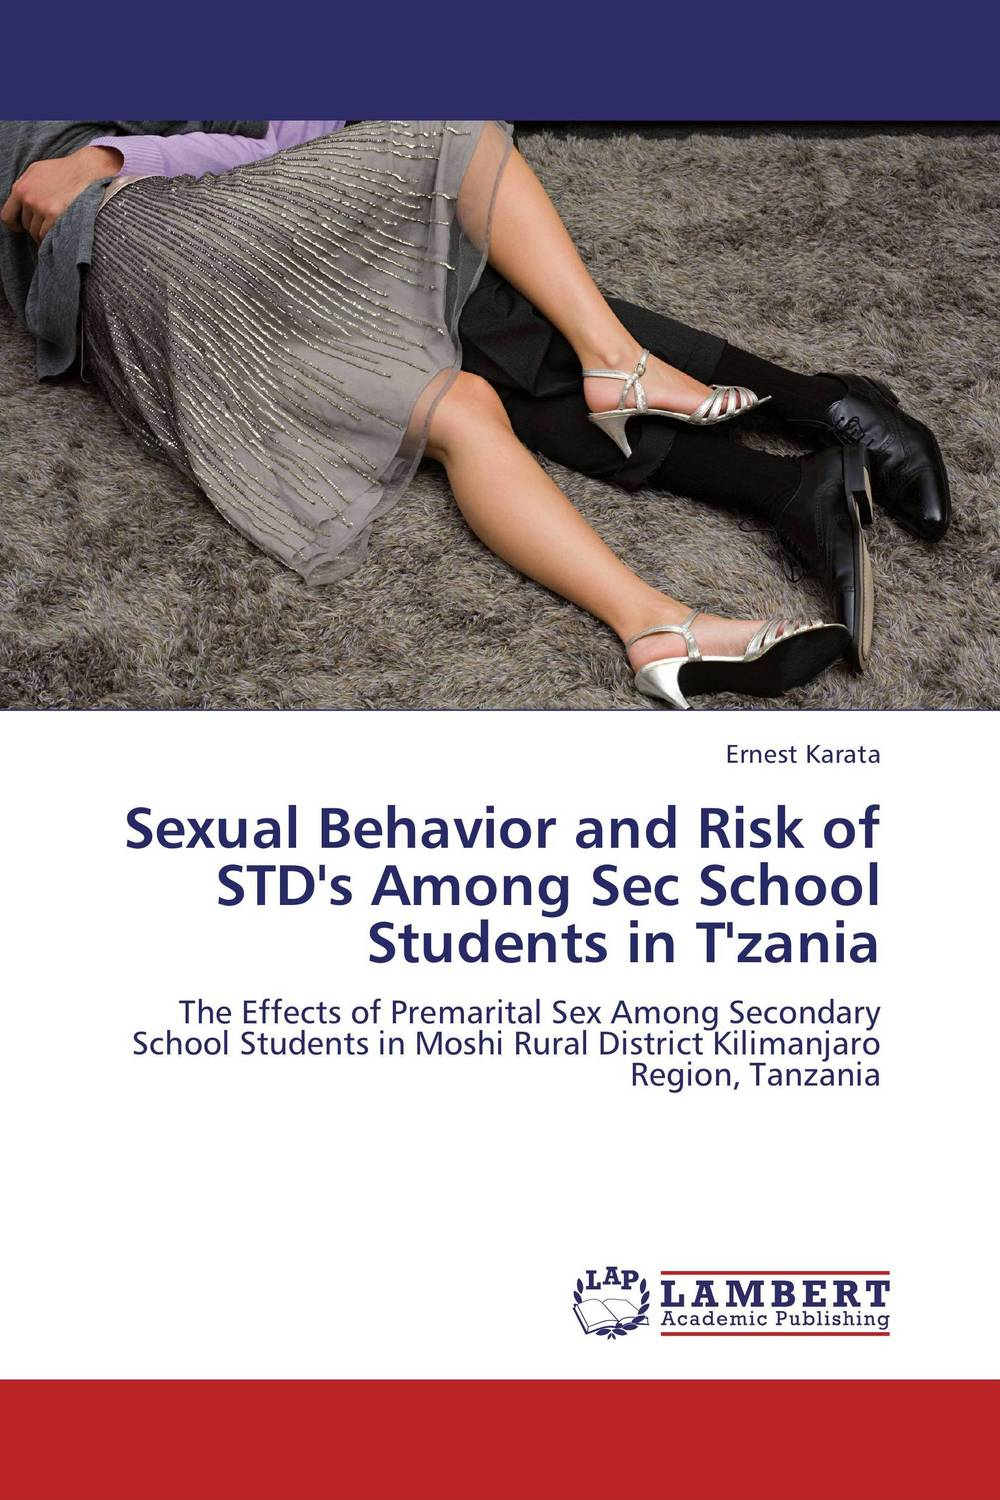 Sexual Behavior and Risk of STD's Among Sec School Students in T'zania role of school leadership in promoting moral integrity among students